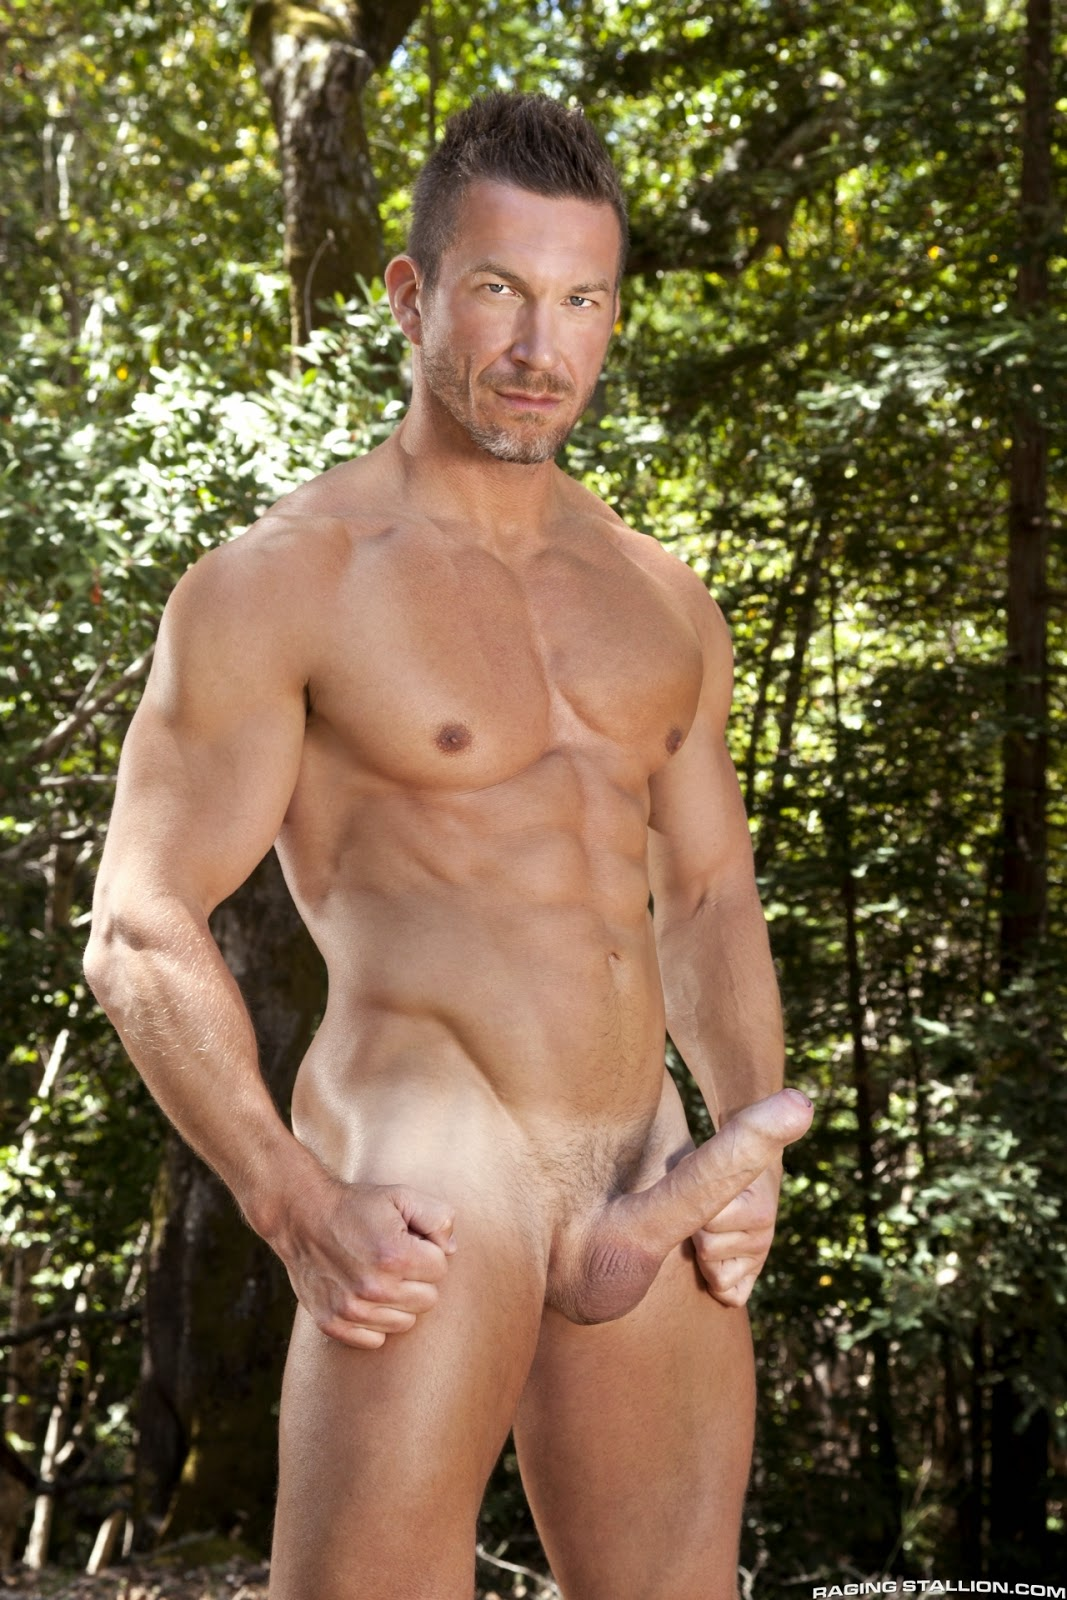 gay porn stars 2014 GRABBY Best Porn Performer 2013 but he won it again in 2014.